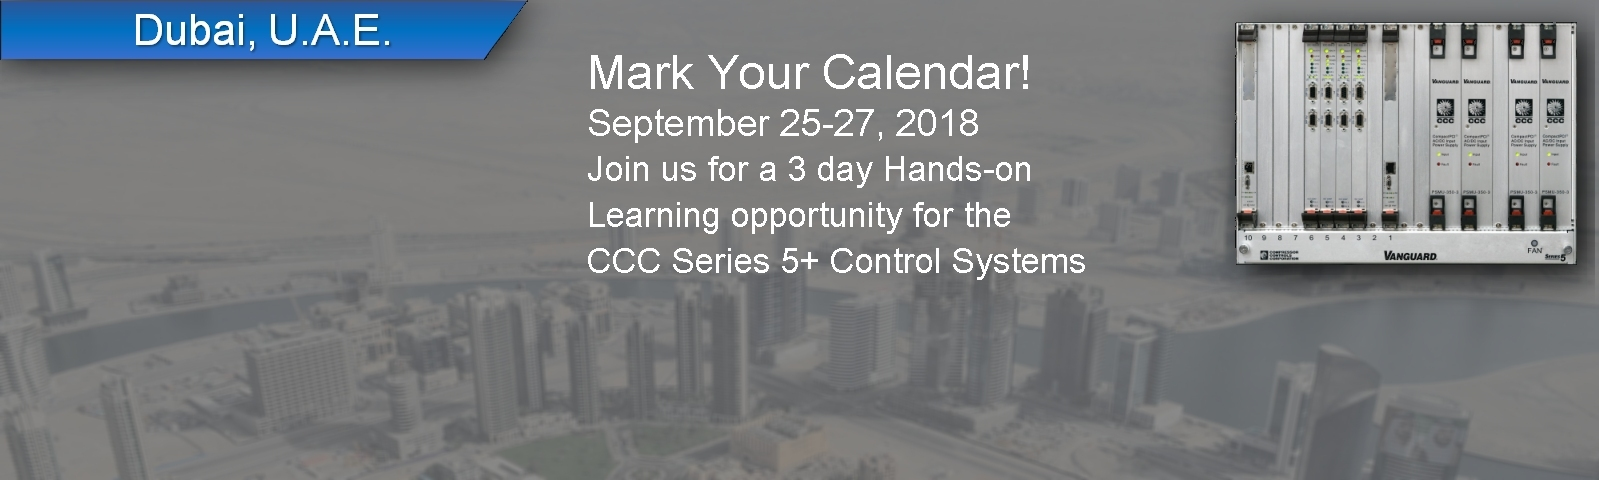 2018 Dubai S5 Regional Training | <a  data-cke-saved-href='https://learning.cccglobal.com/ProductDetails.aspx?ProductID=284' href='https://learning.cccglobal.com/ProductDetails.aspx?ProductID=284'>Register Now</a>